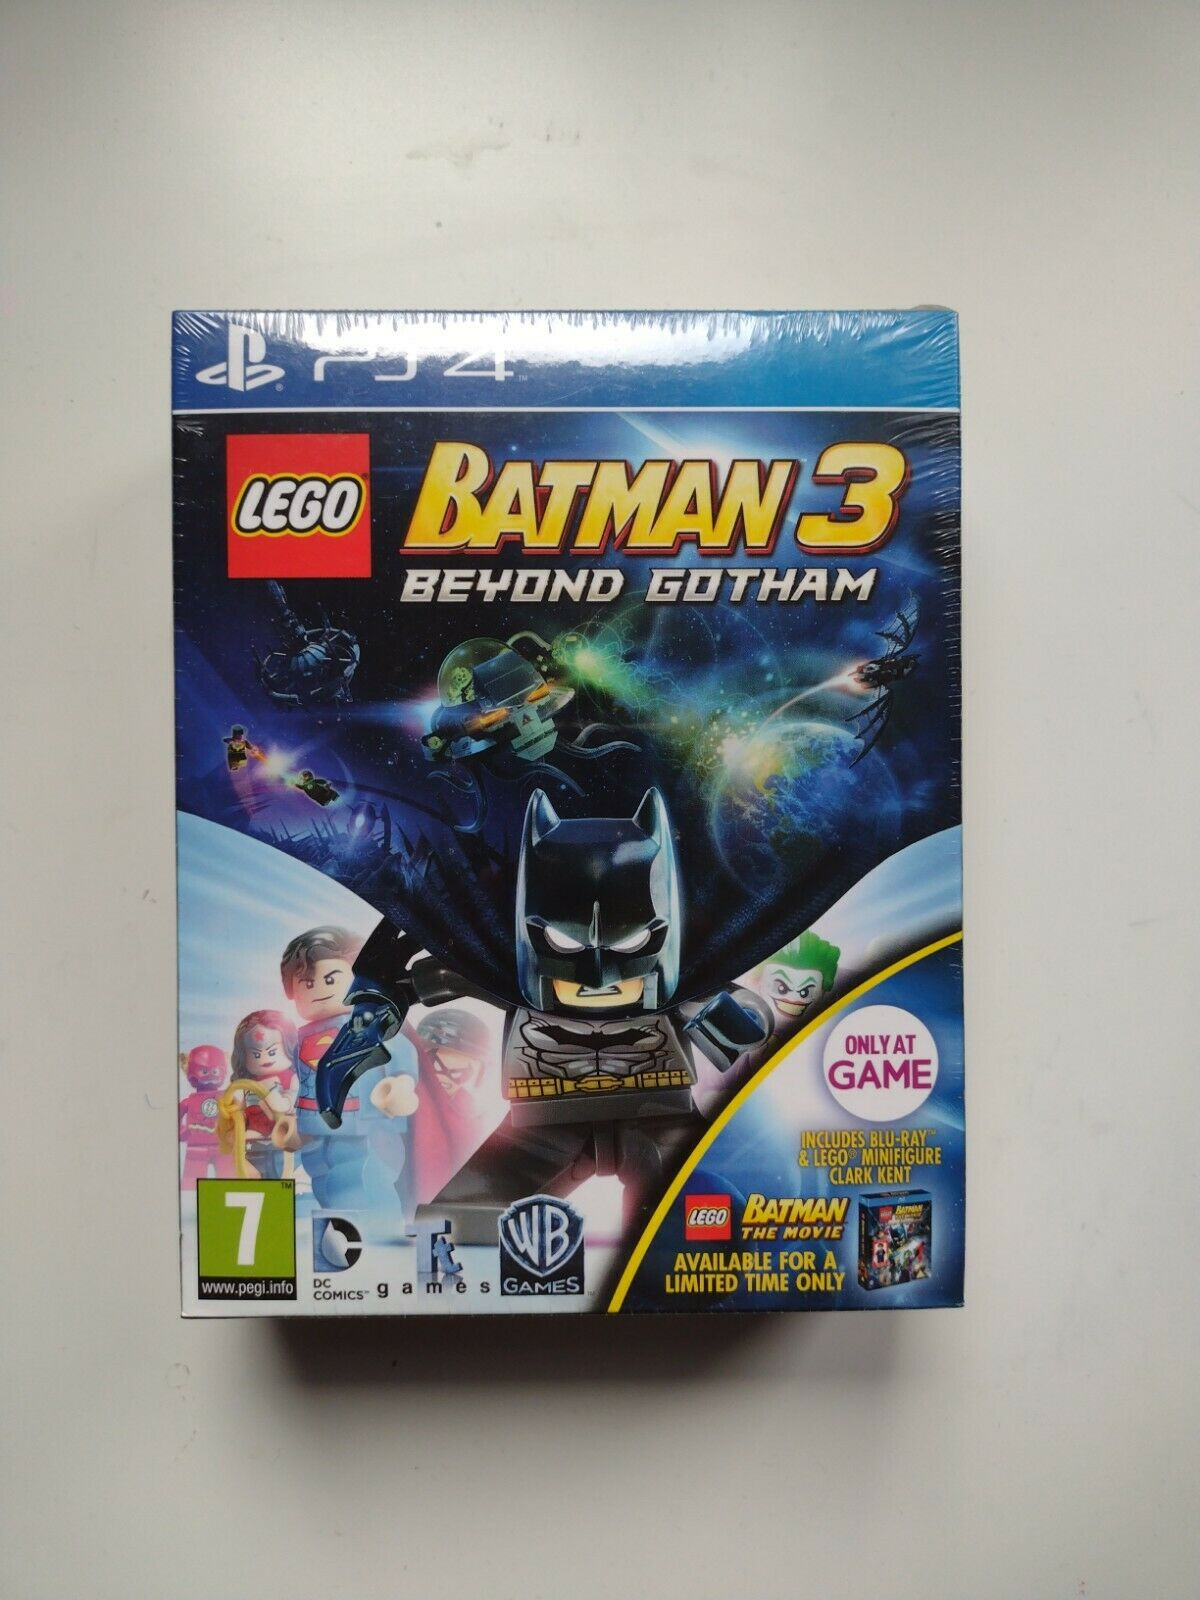 Lego Batman 3 PS4 Limited edition Clark Kent figure ULTRA RARE only one on ebay